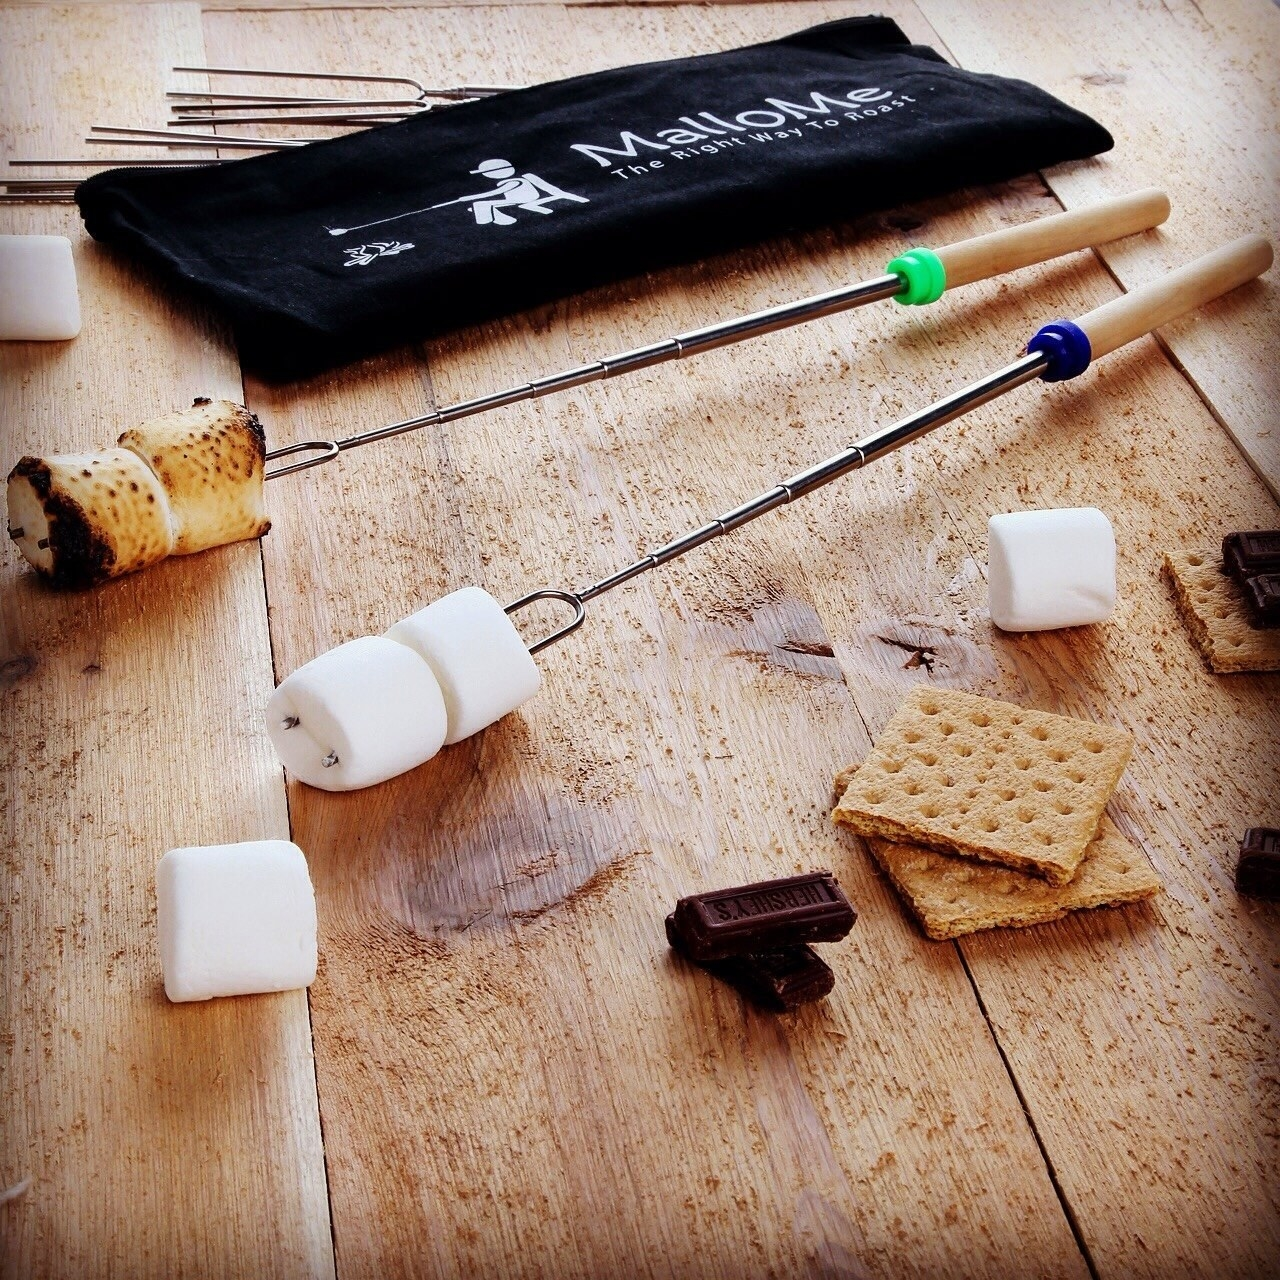 extendable sticks with marshmallows on the end